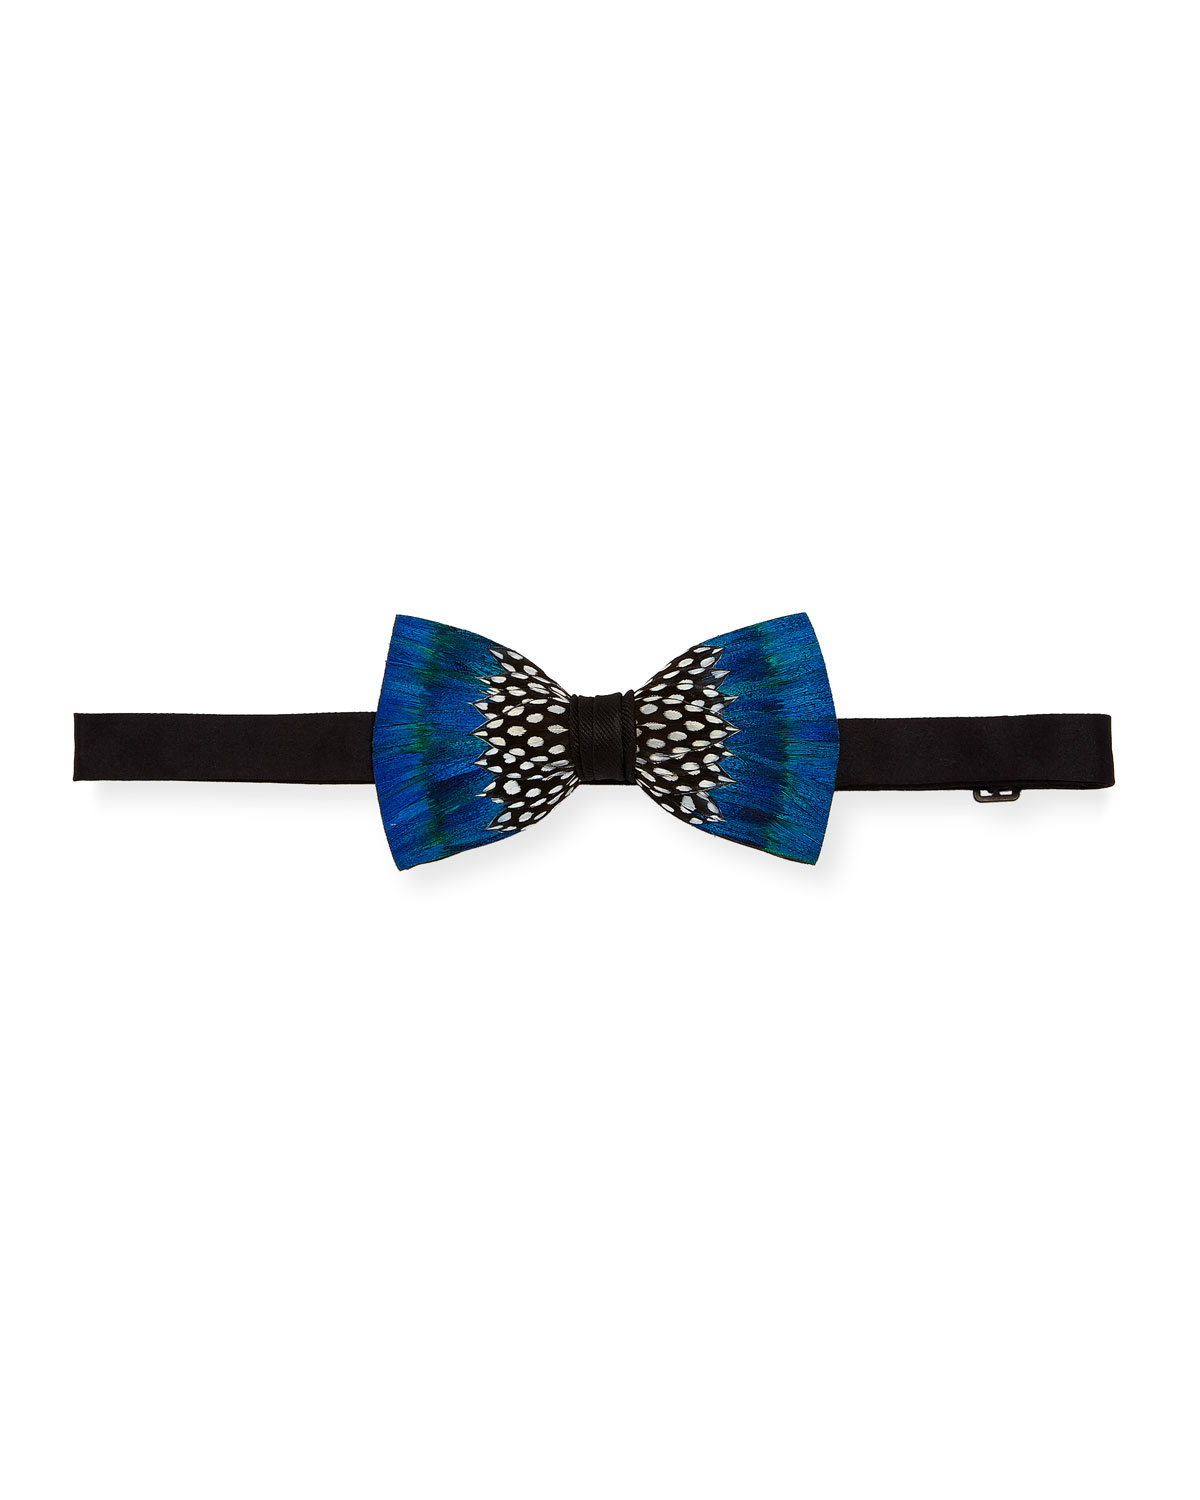 Brackish Bowties Durham Feather Formal Bow Tie